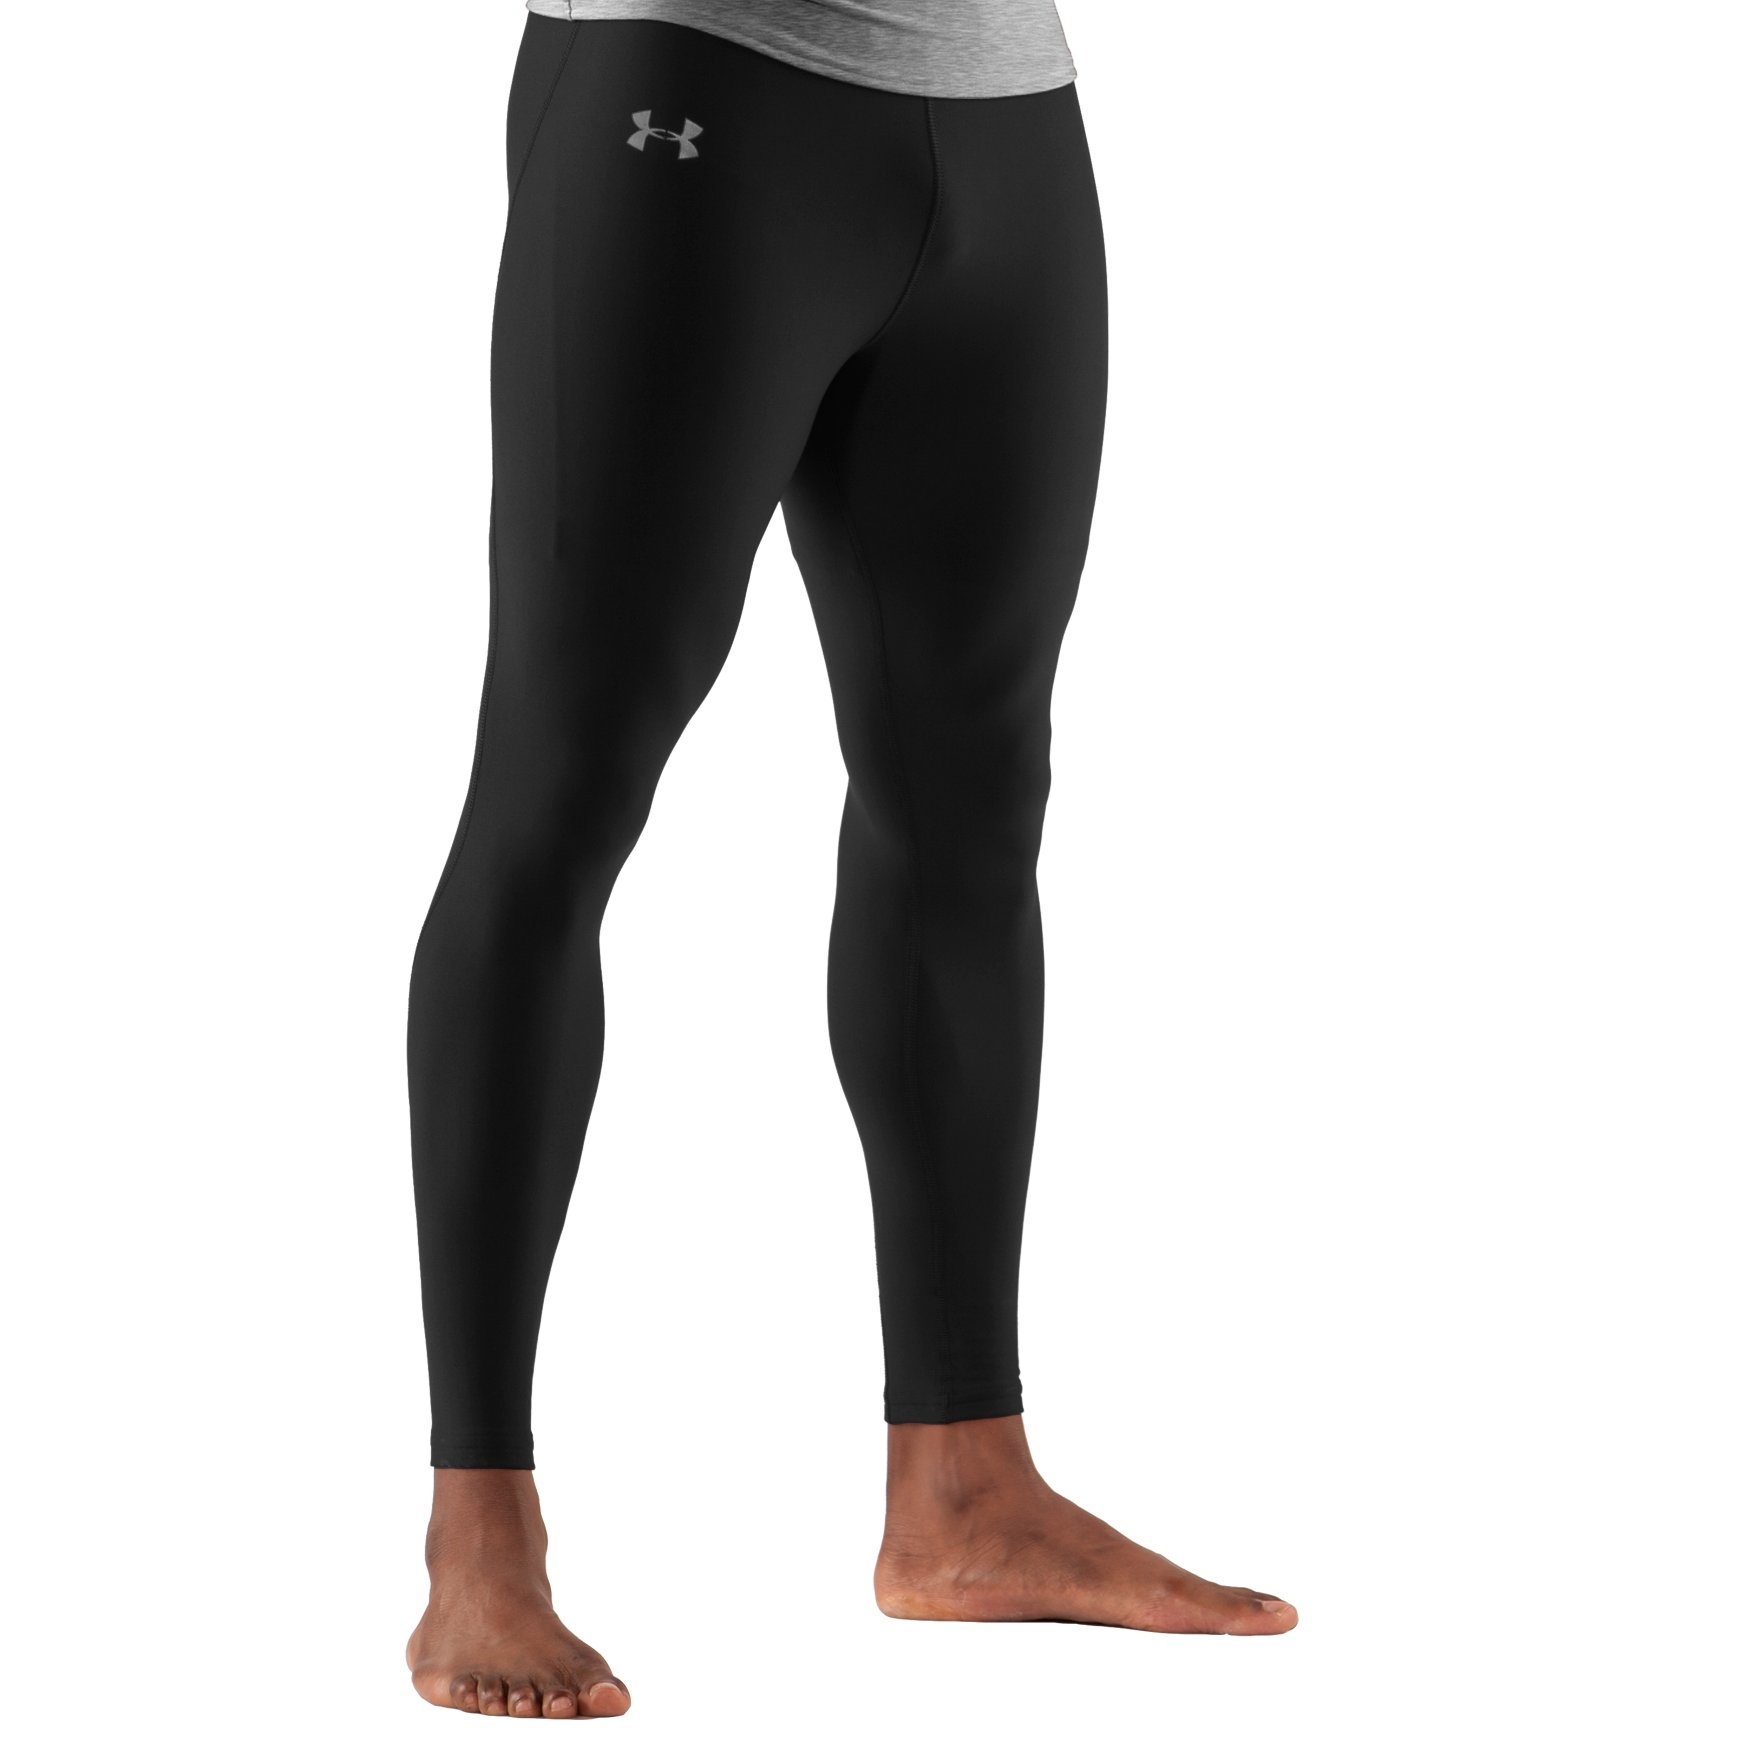 Browse an exclusive range of men's fashion leggings for intense activity. Wear ultra-soft fabric that stretches with your every move makes it one of the finest men's gym leggings. Try the wide waistband offers a slimming fit and compression style design reduces muscle fatigue and cuts recovery time.